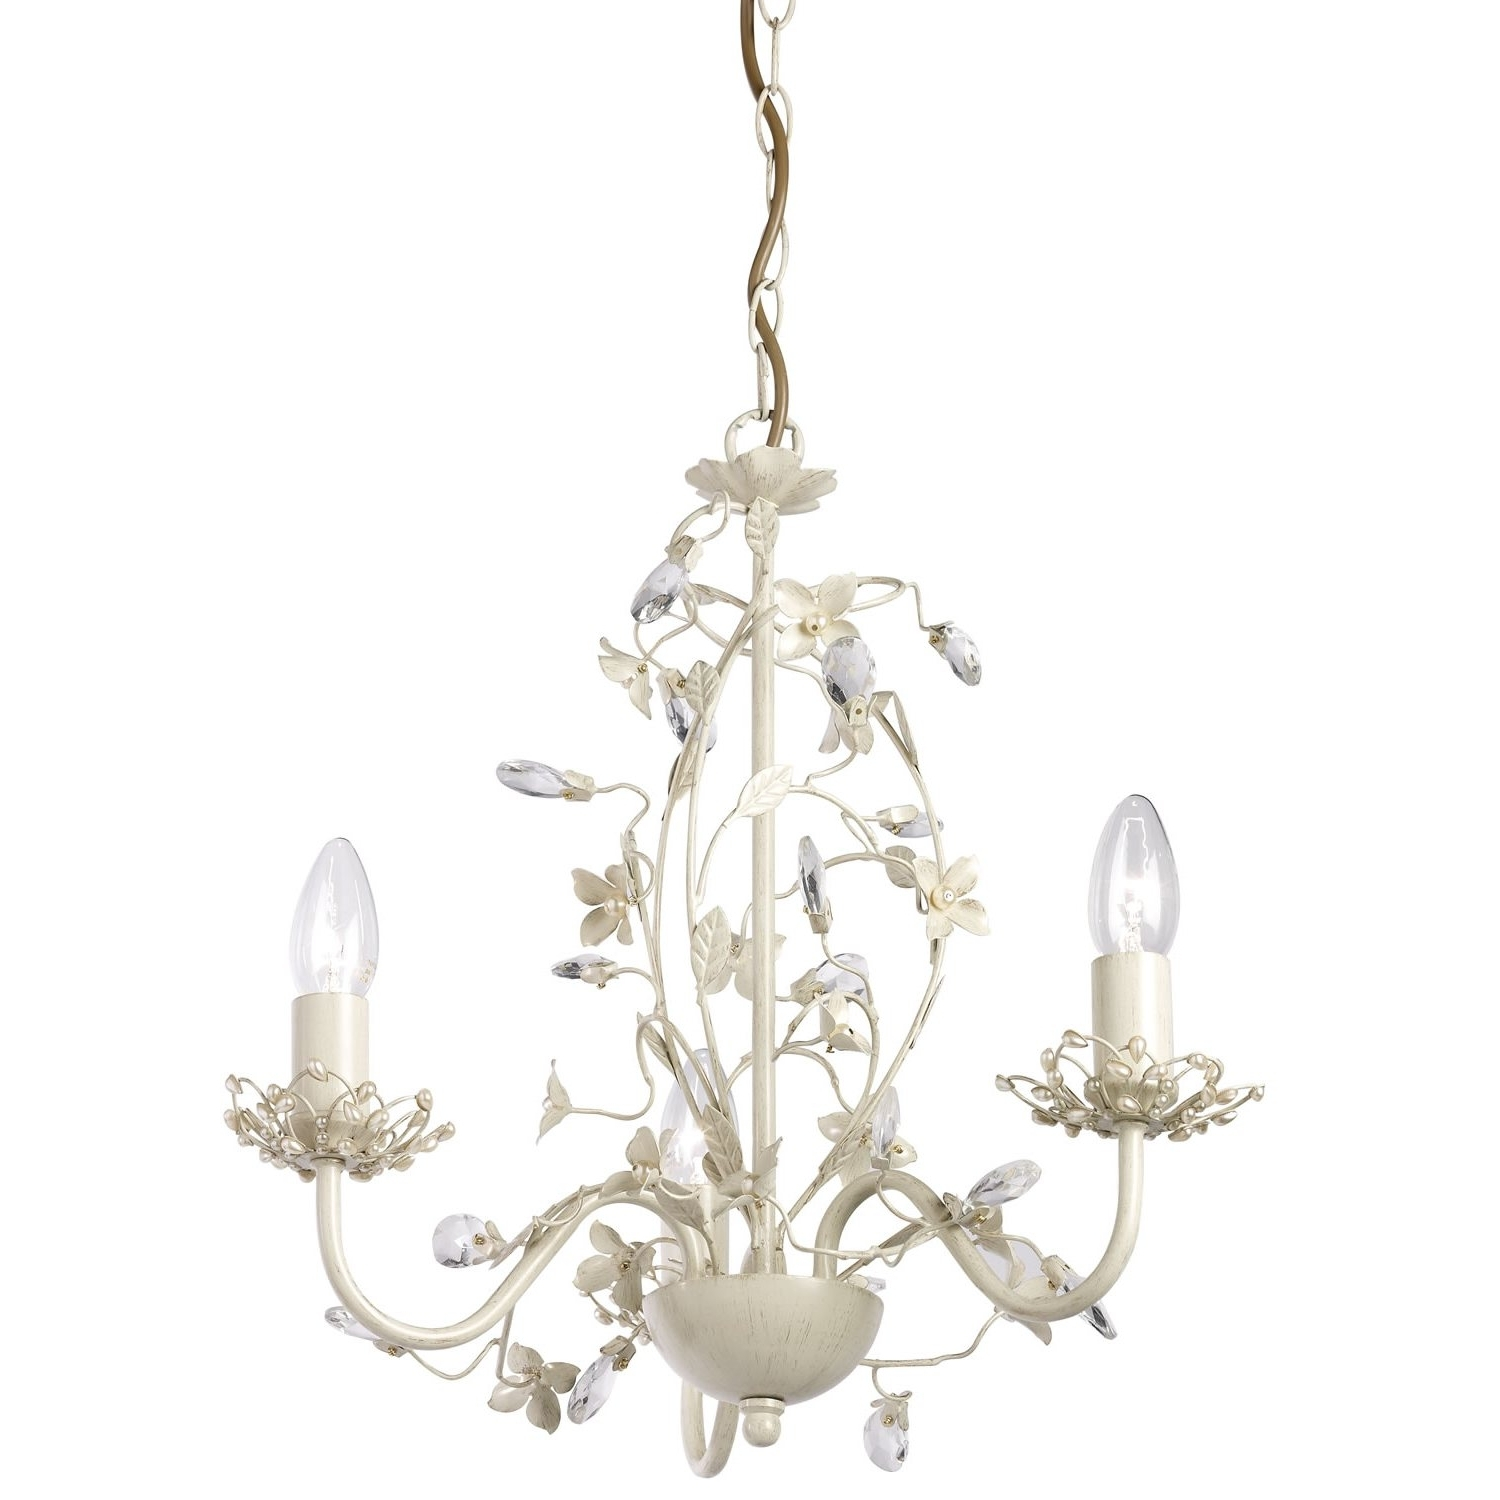 Tirtagucipool Pertaining To Endon Lighting Chandeliers (View 19 of 20)